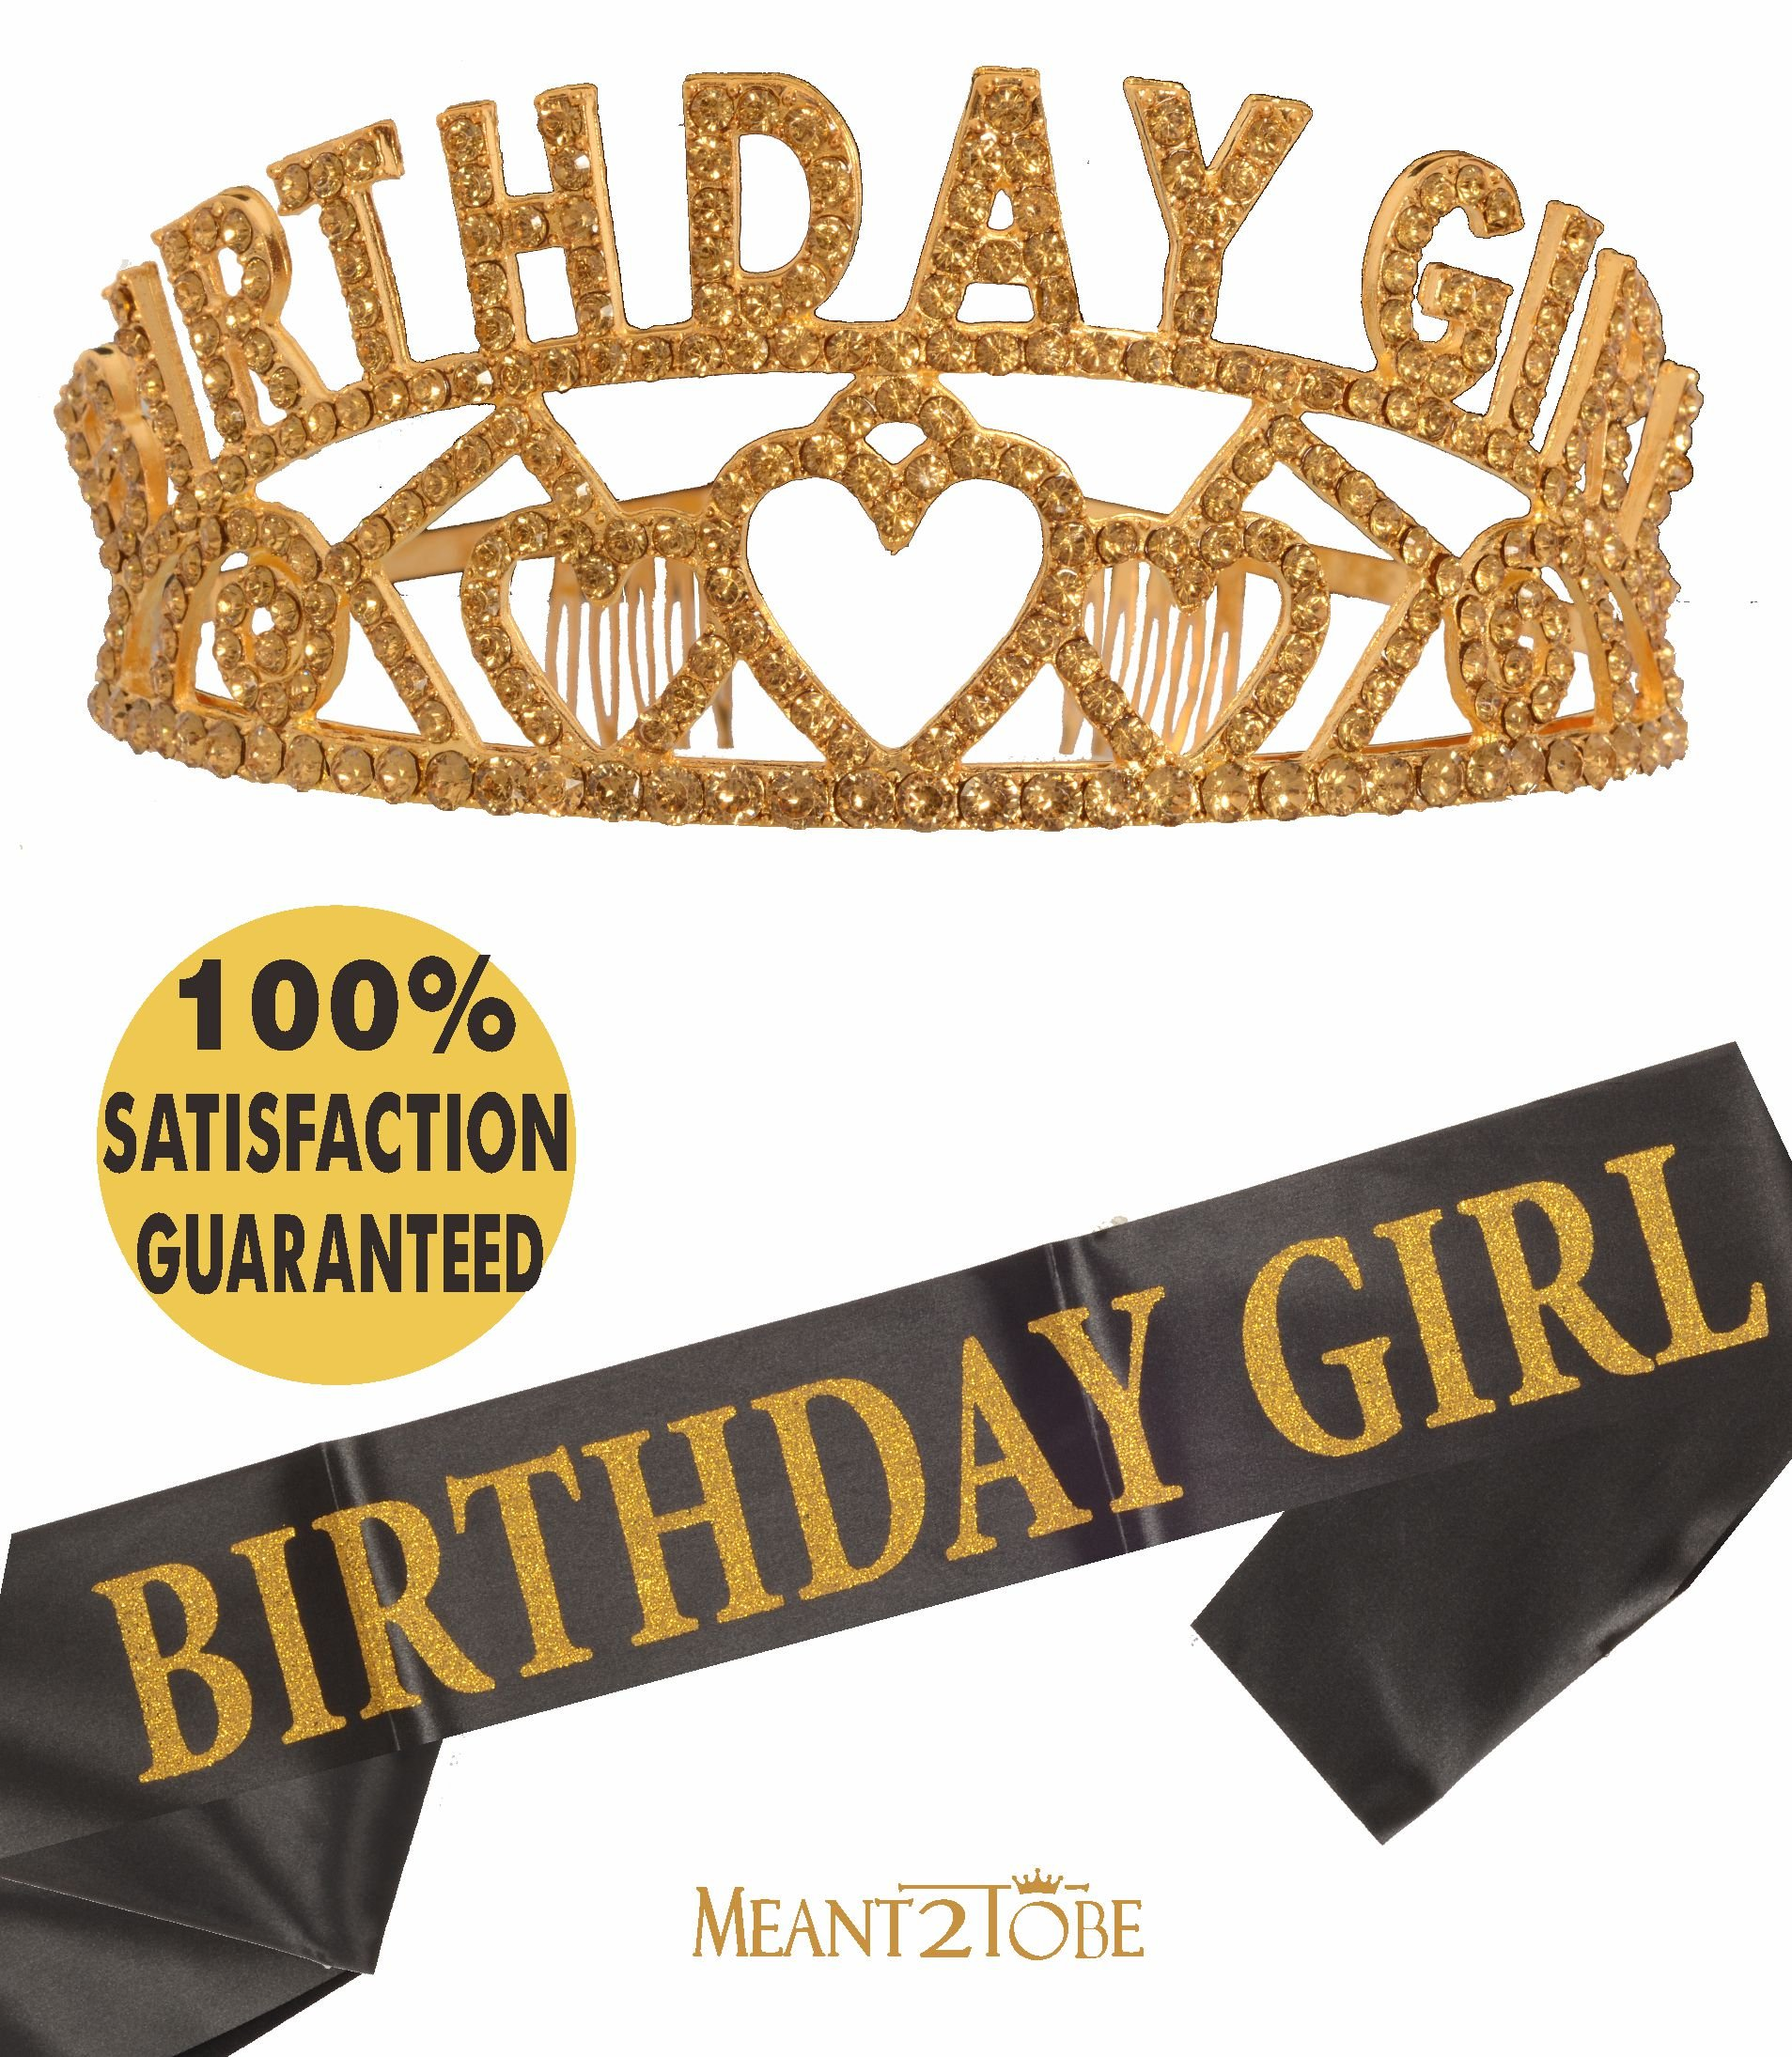 Meant2ToBe Birthday Girl Sash and Tiara, Birthday Girl Sash and Crown, Happy Birthday Party Supplies, Favors, Decorations 13th, 16th, 21st, 30th, 40th, 50th, 60th, 70th, 80th, 90th Birthday (Gold)